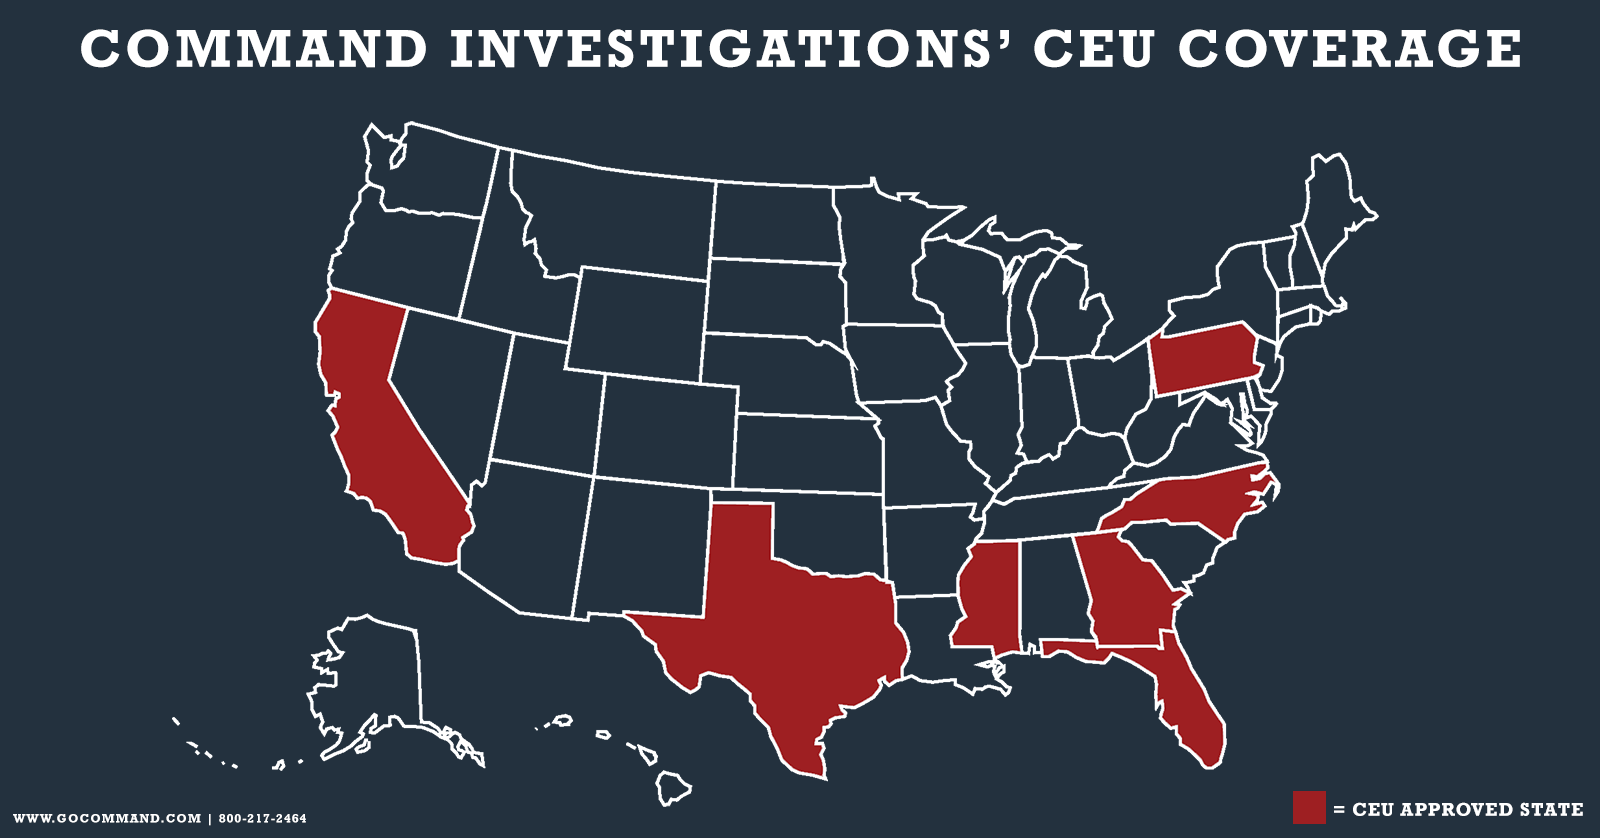 Command Investigations expands CEU coverage, adds North Carolina and Mississippi